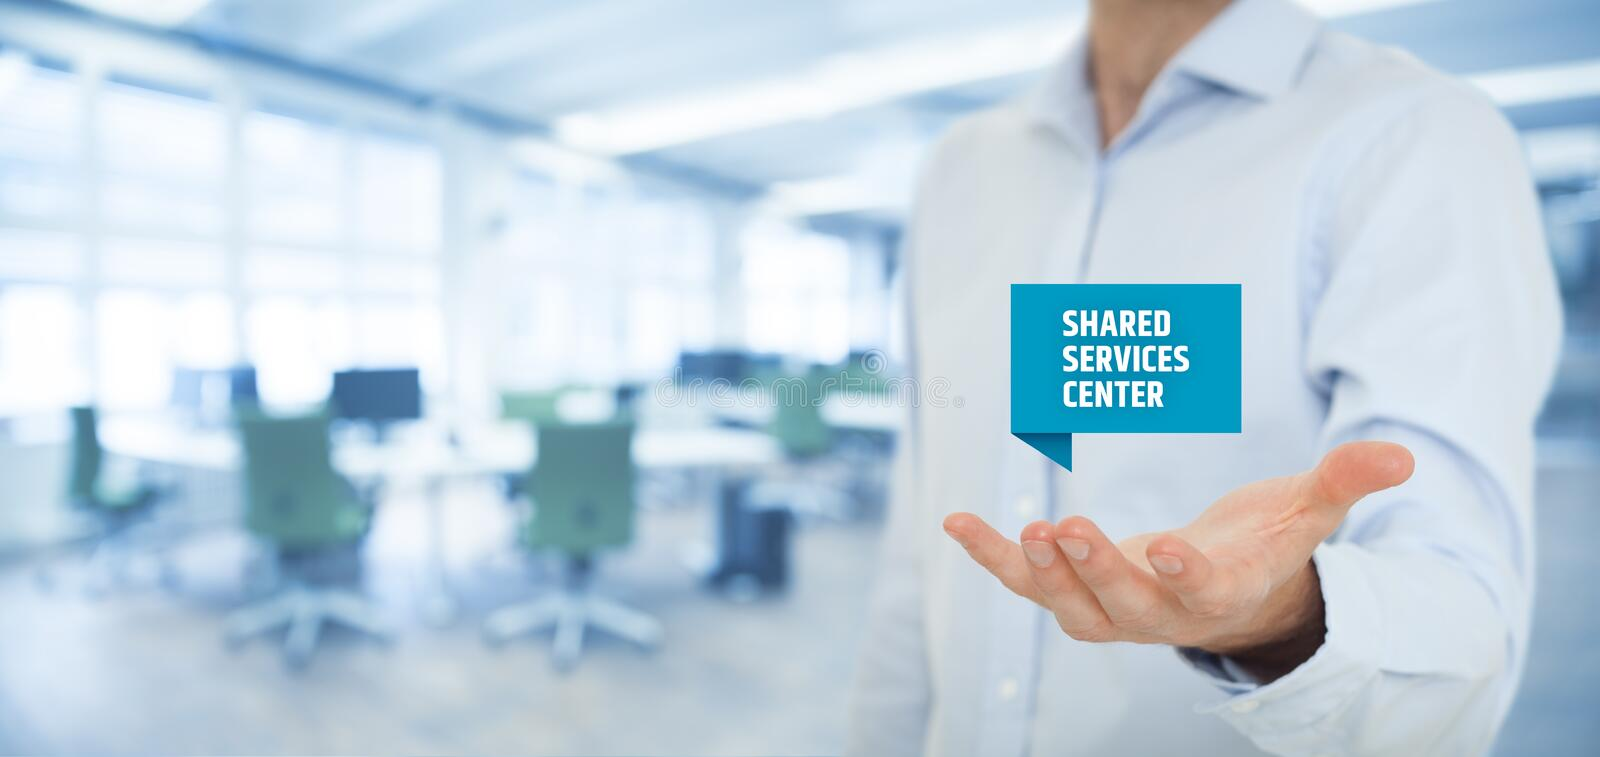 Shared services center royalty free stock image